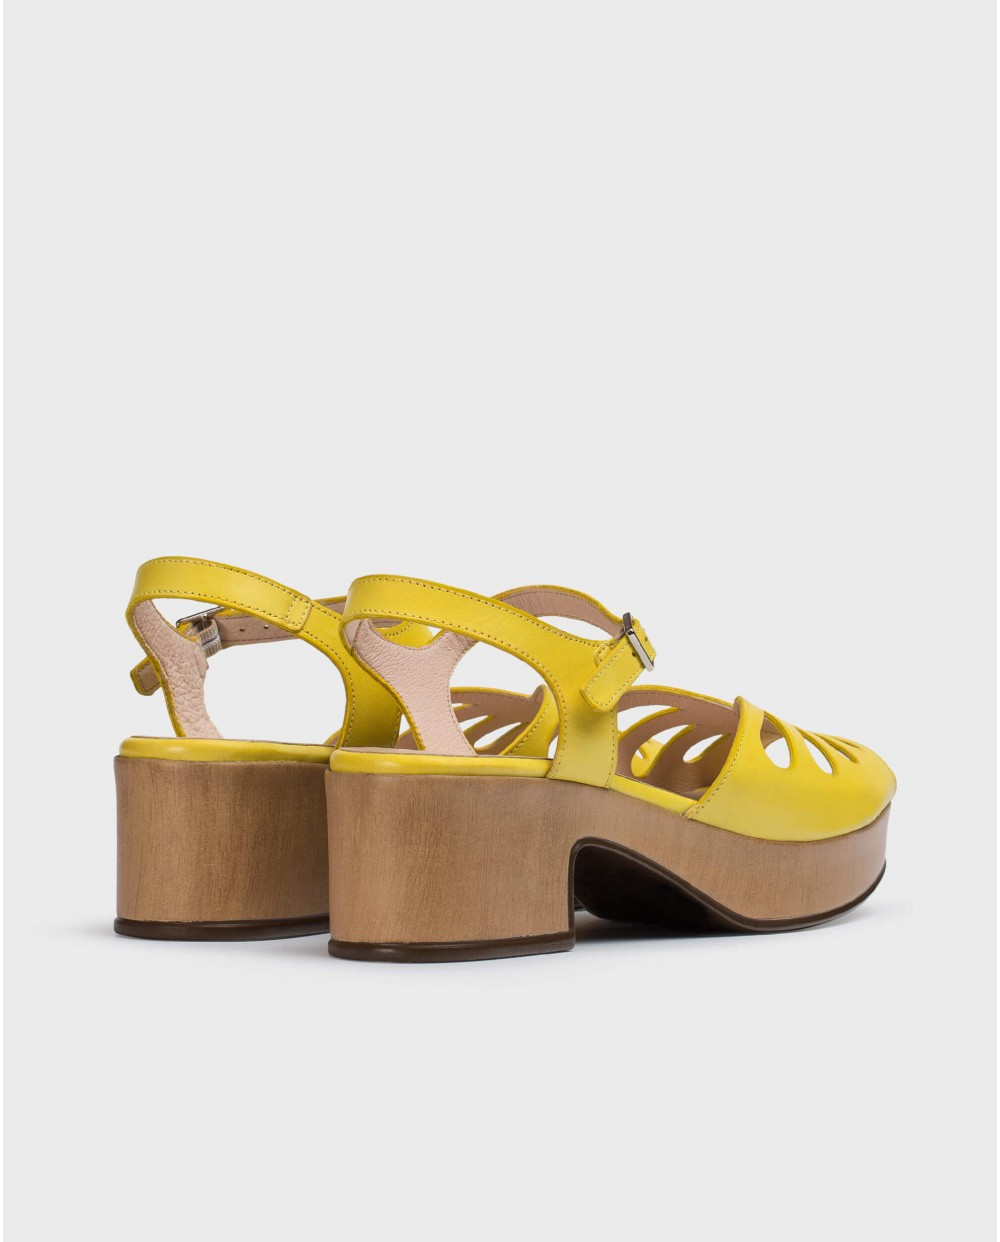 Wonders-Sandals-Perforated wedge sandal